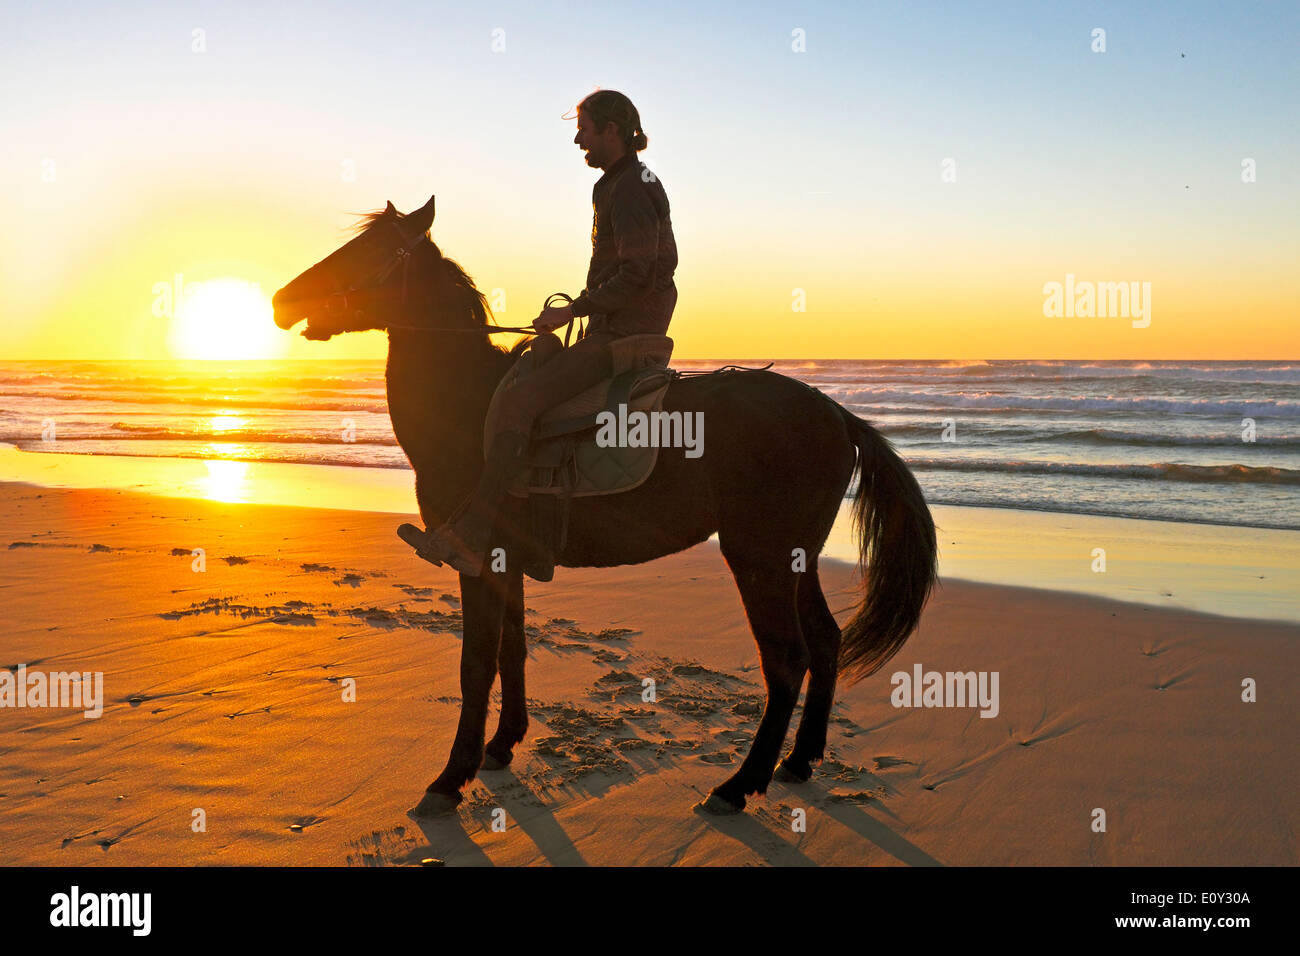 Horse riding on the beach at sunset - Stock Image